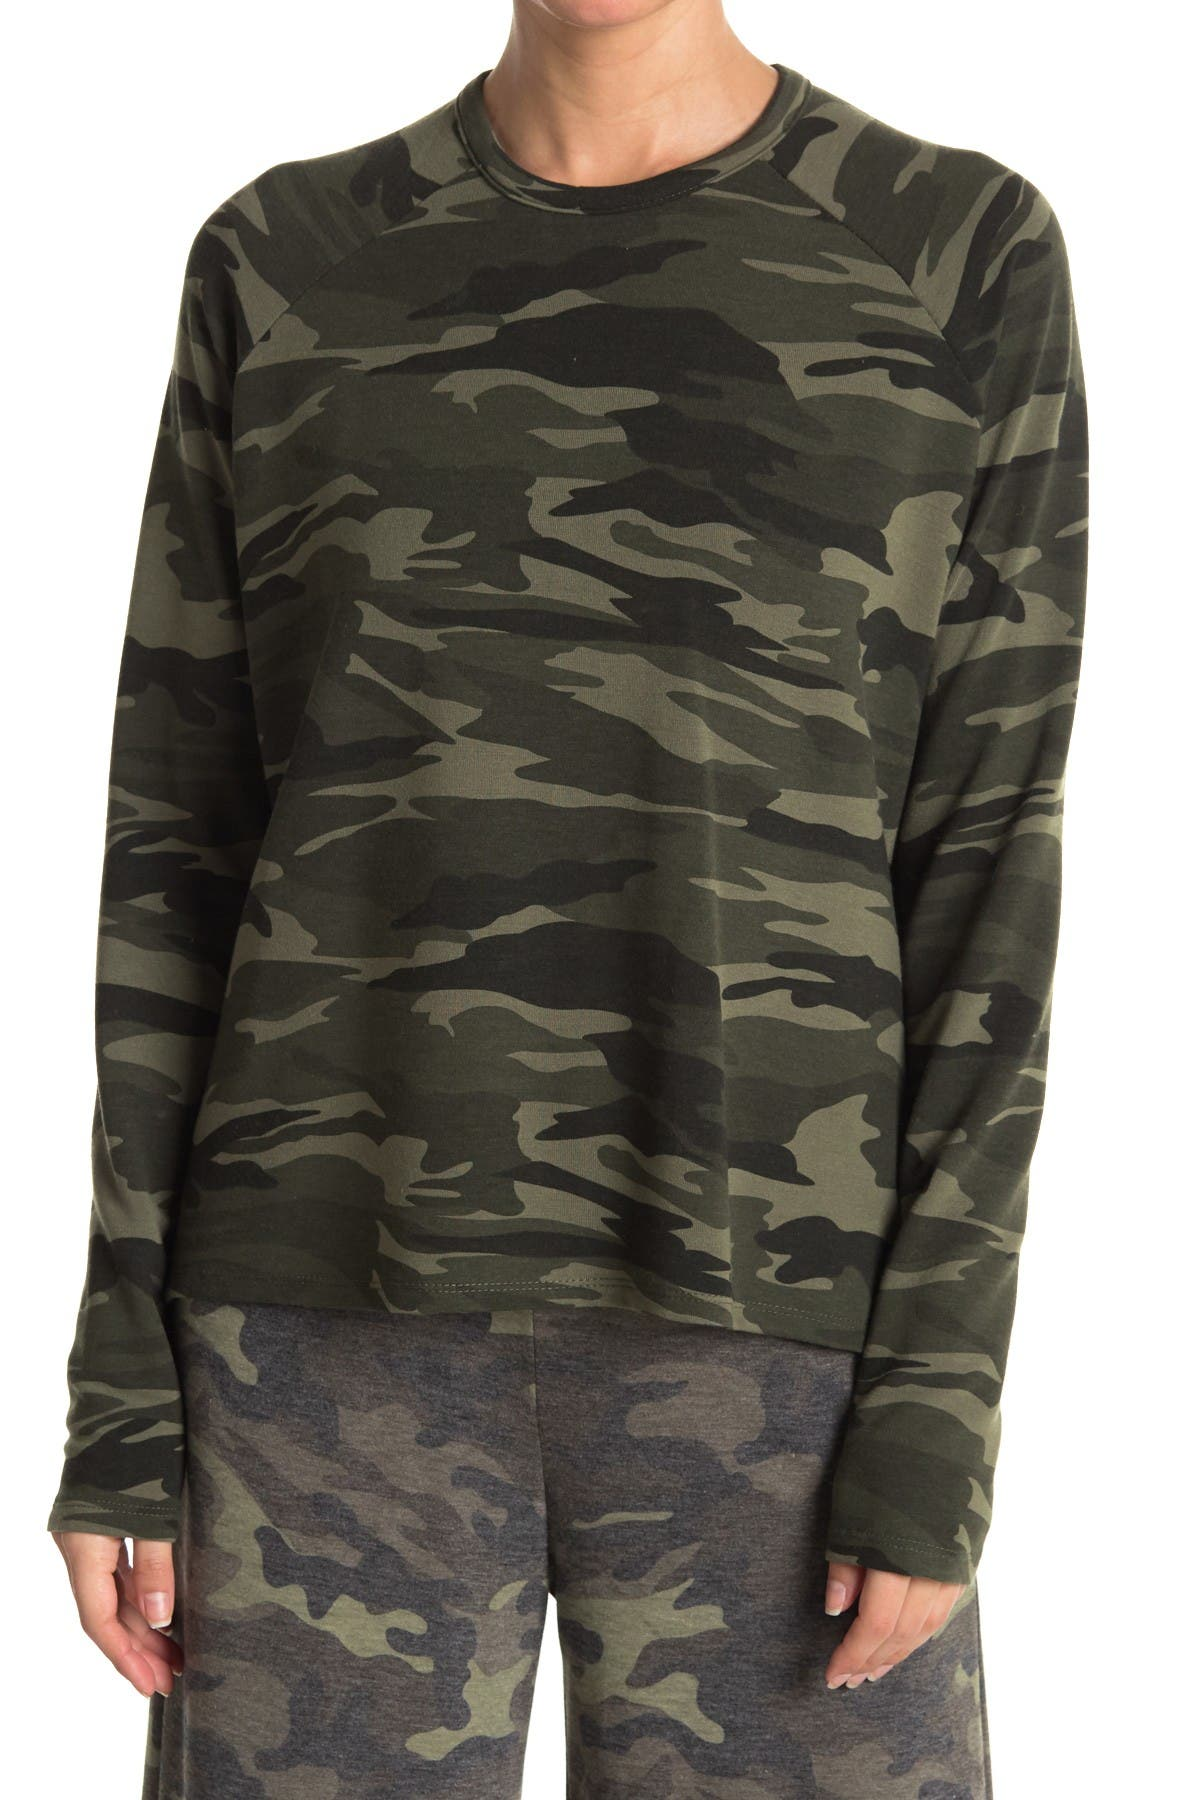 Image of Theo and Spence Camo Long Sleeve Sweater